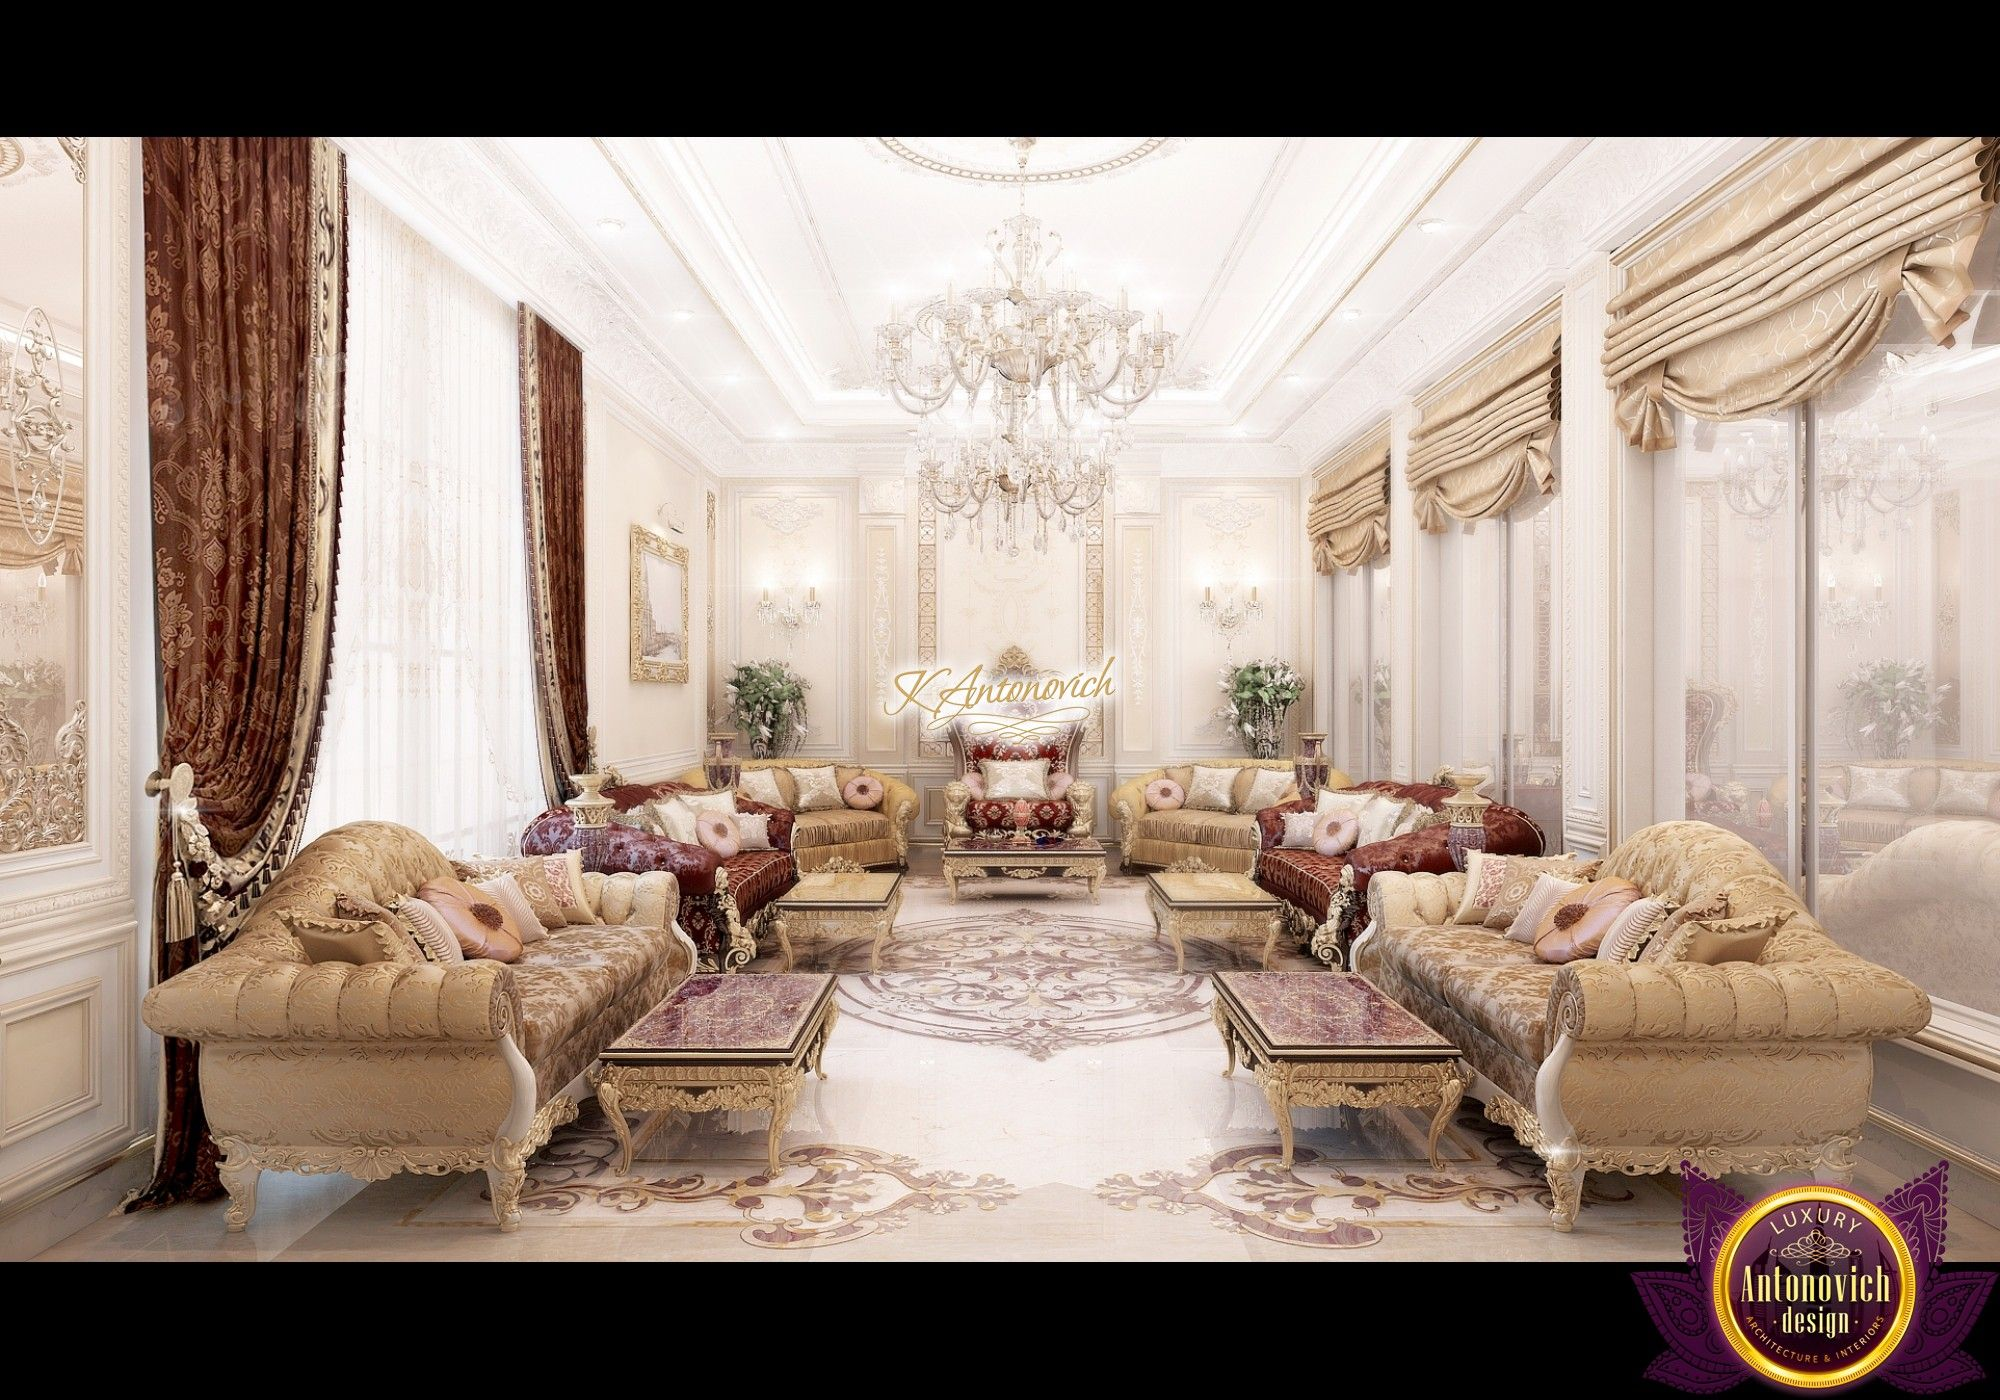 Royal Majlis Design In Saudi Arabia If You Are Looking For A